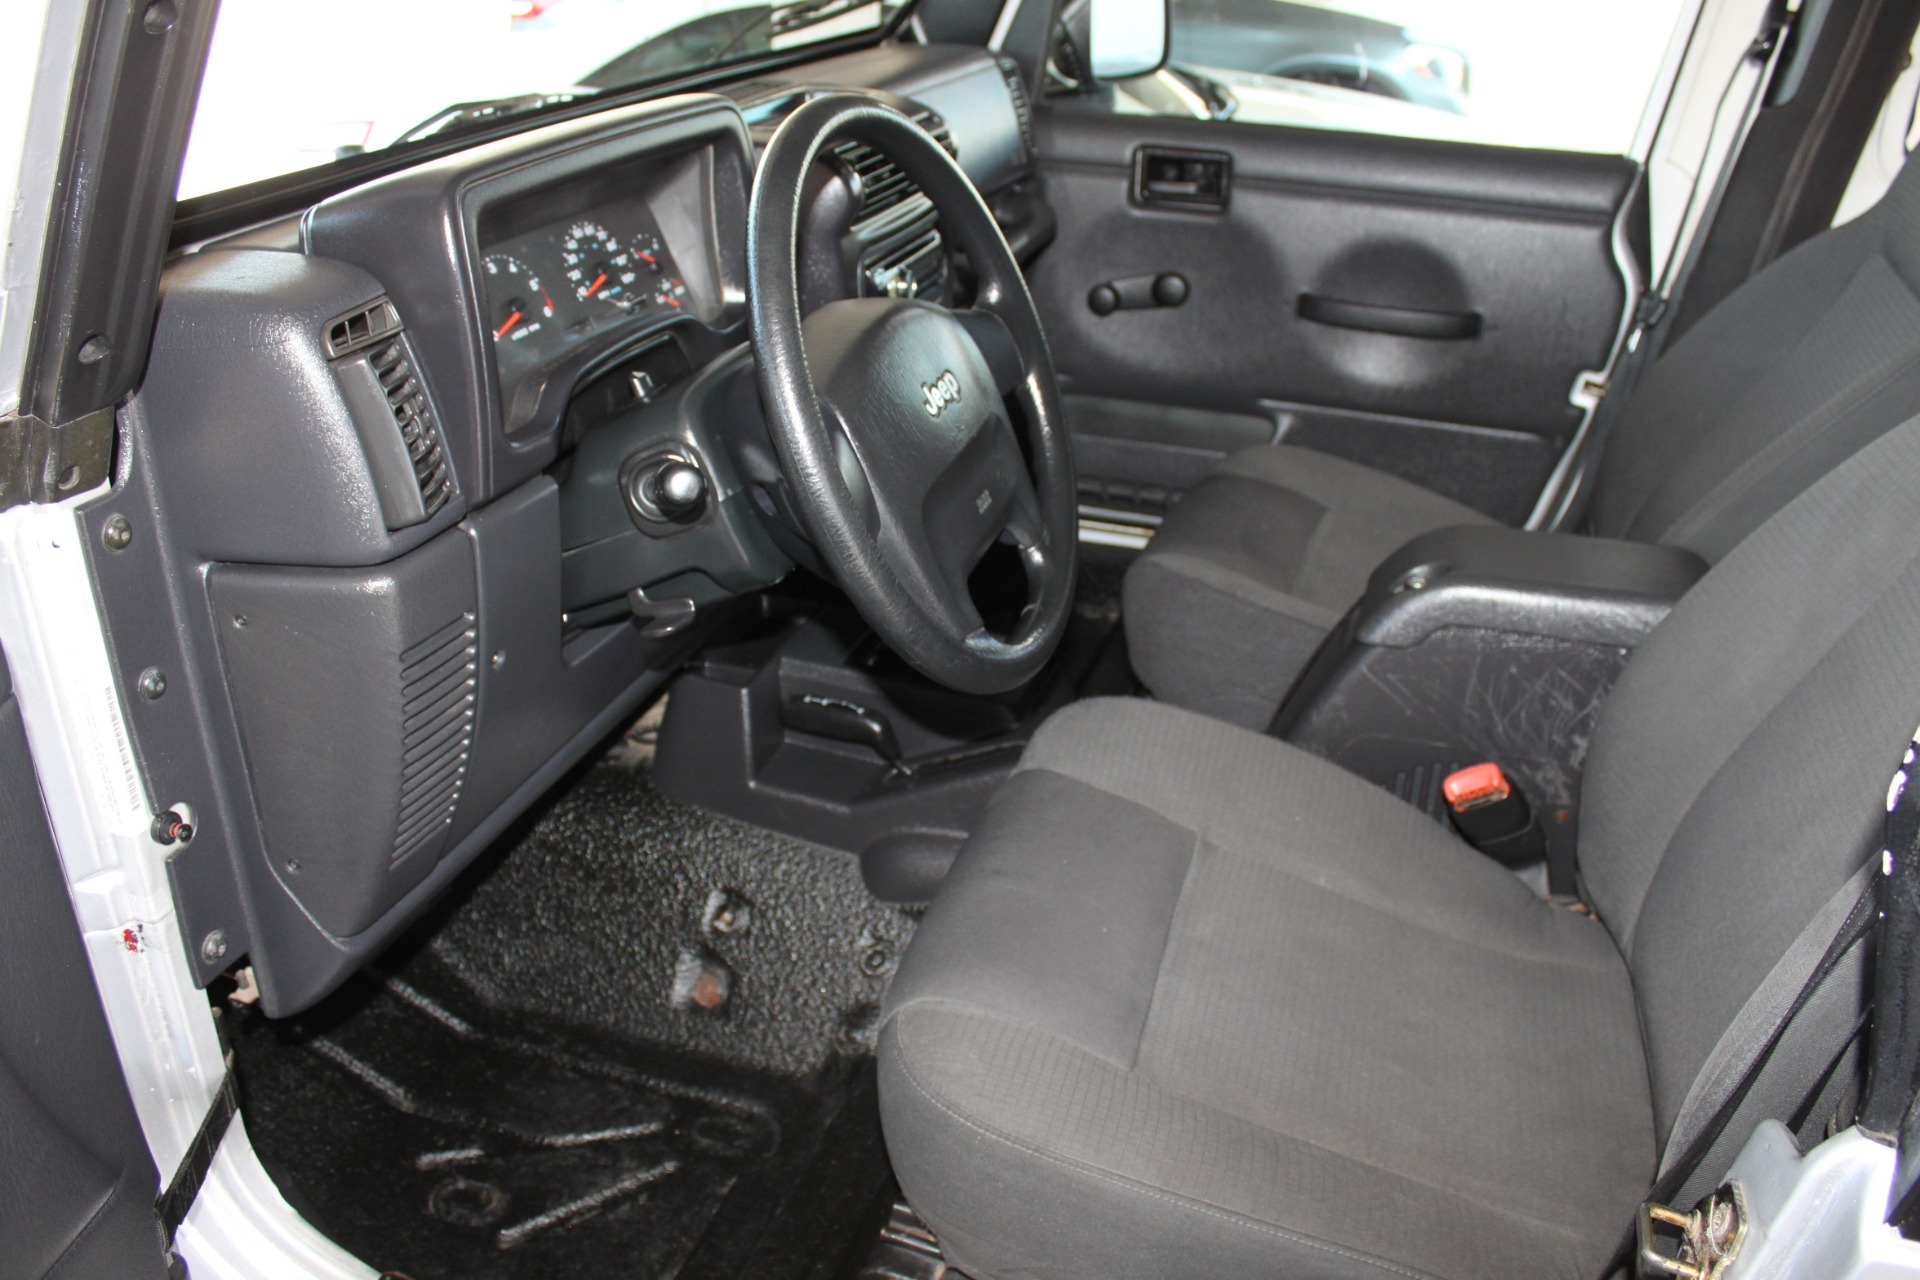 Used-2006-Jeep-Wrangler-Unlimited-LWB-Collector